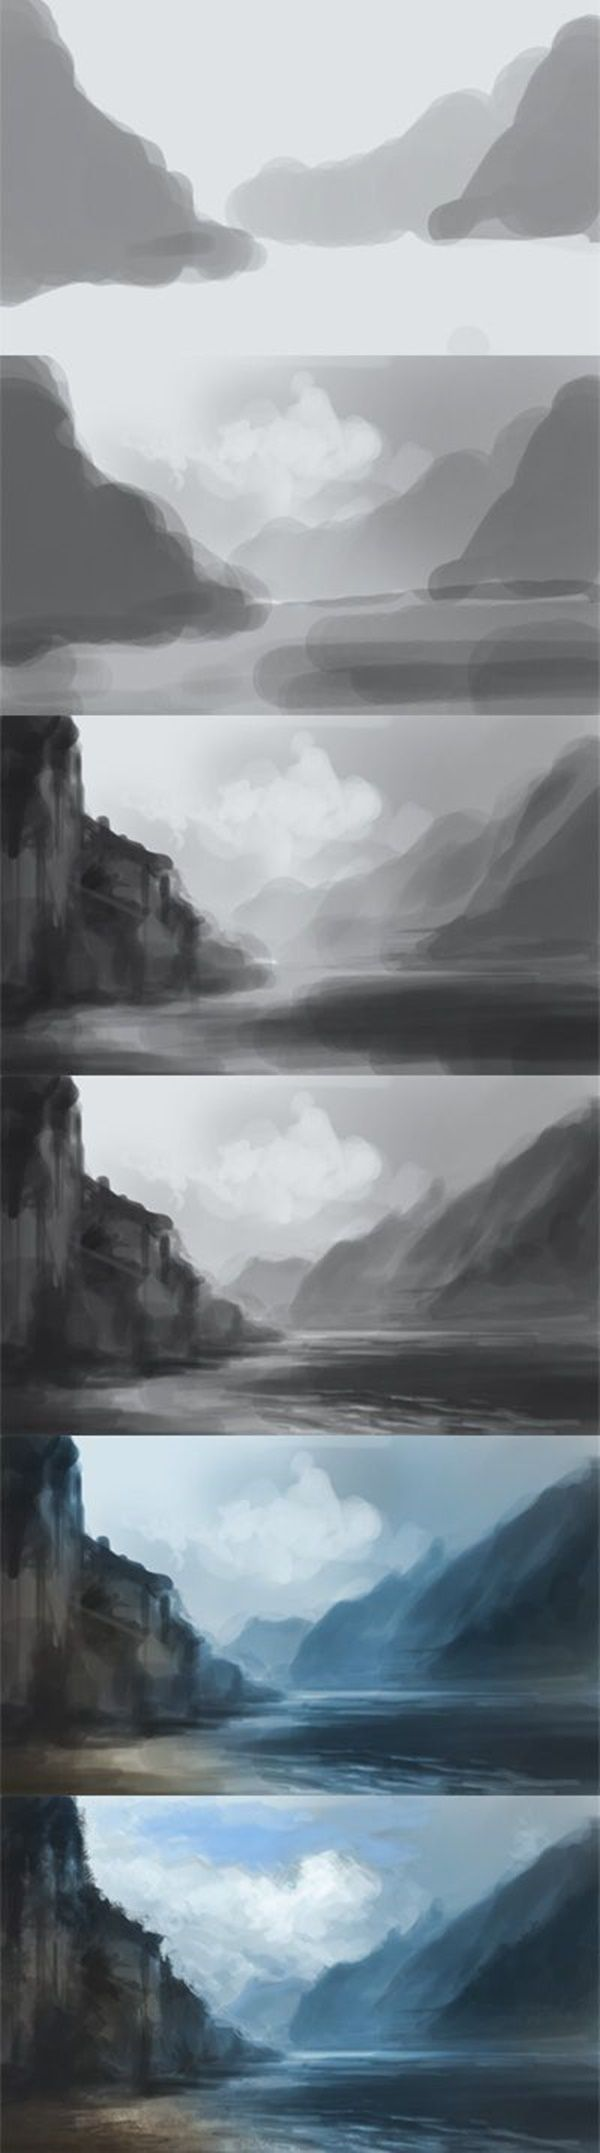 60 Easy And Simple Landscape Painting Ideas Landscape Drawings Landscape Paintings Digital Painting Tutorials